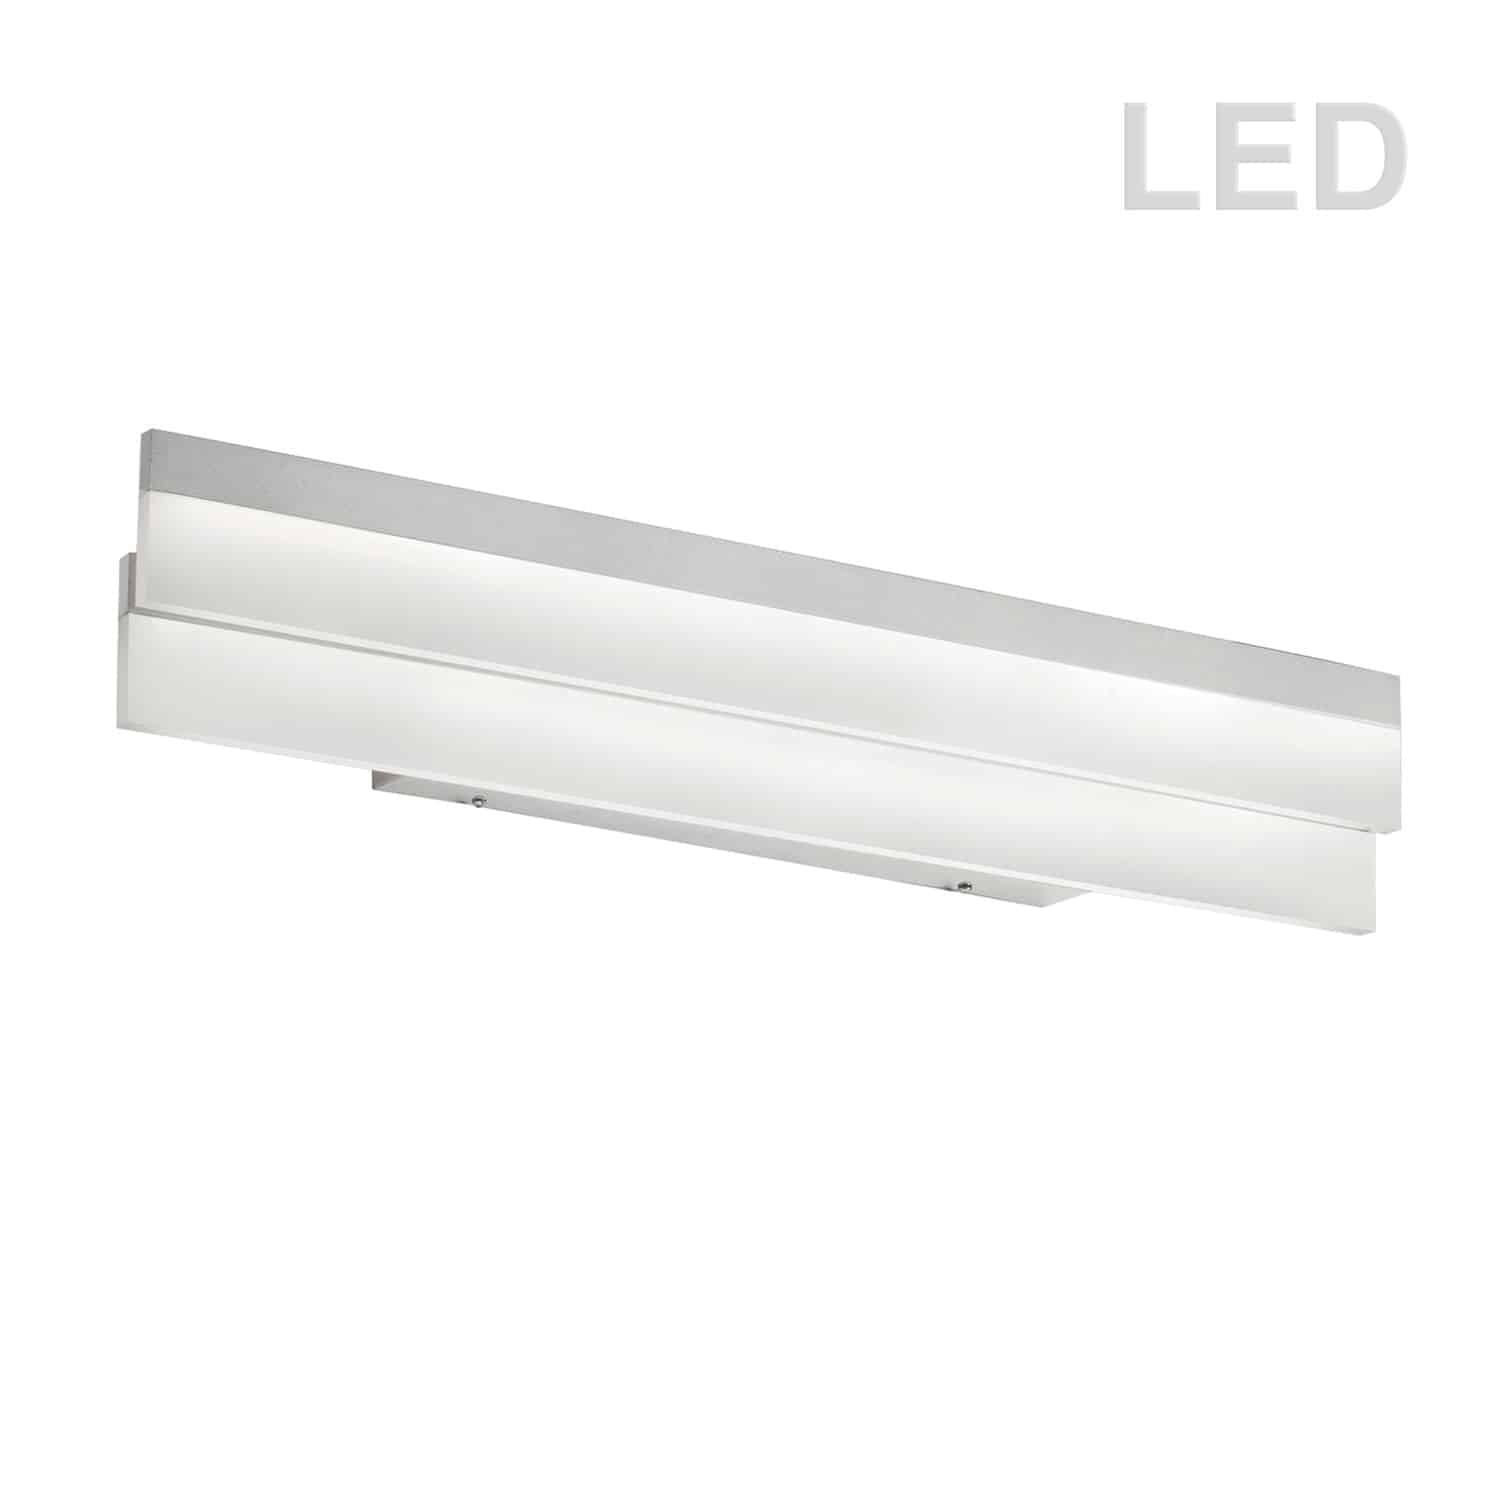 Flat LED Vanity Fixture, Silver/Polished Chrome, Frosted White Diffuser